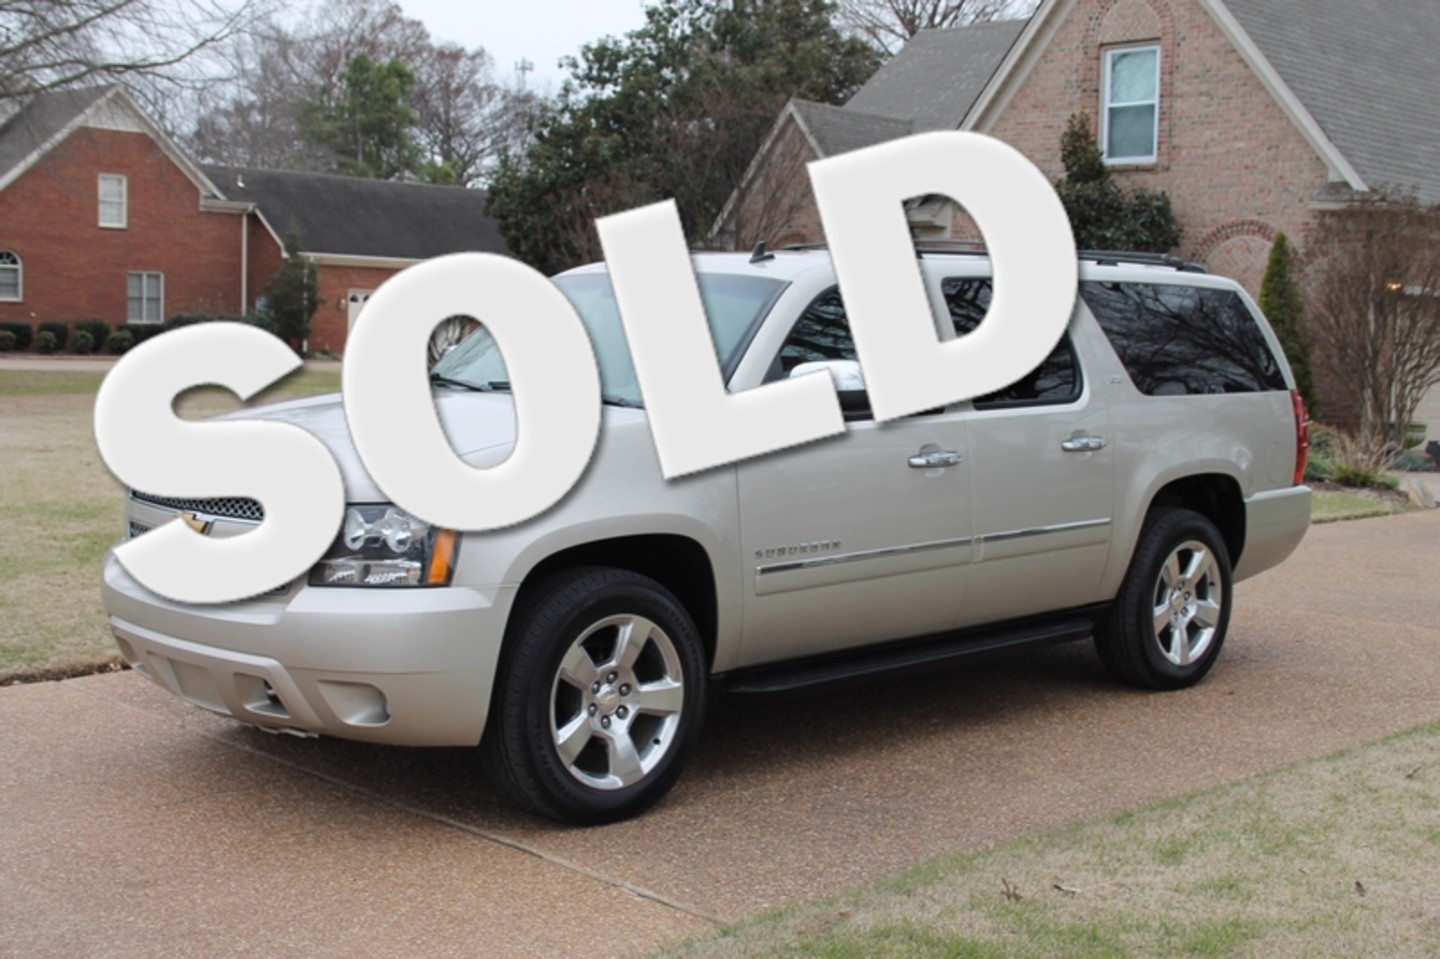 2013 chevrolet suburban ltz price used cars memphis